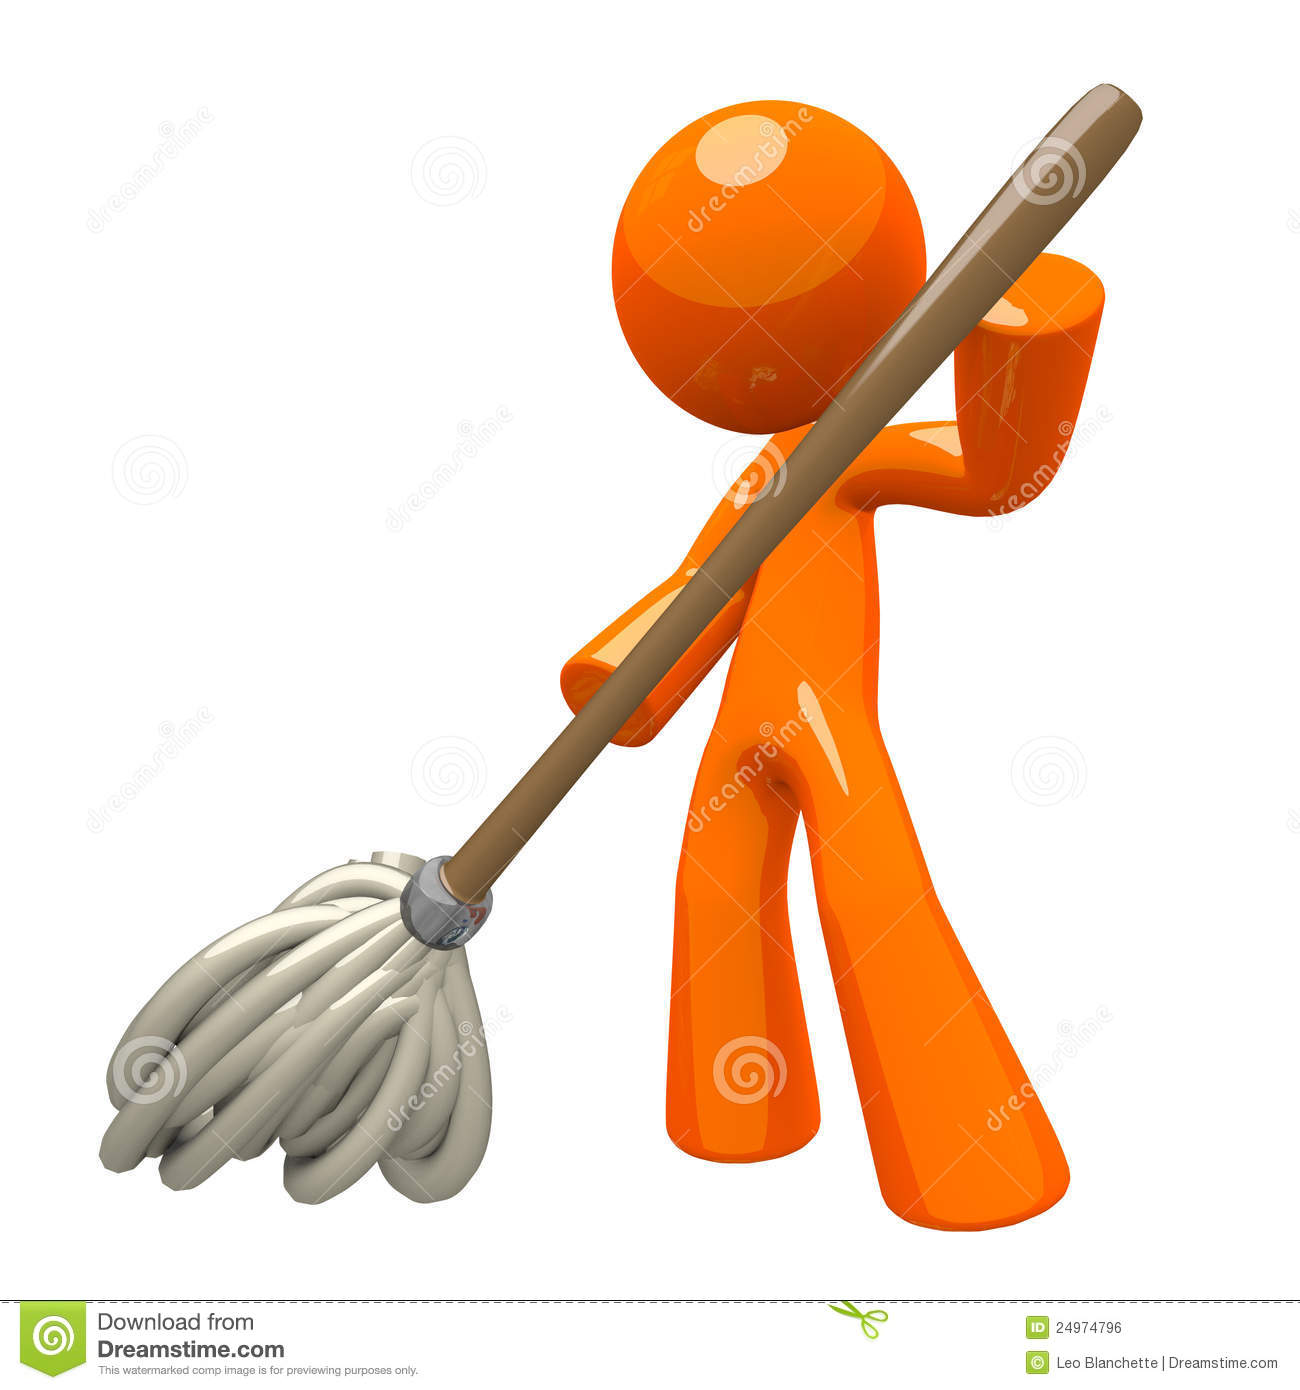 3d Orange Man Mopping Royalty Free Stock Image - Image: 24974796